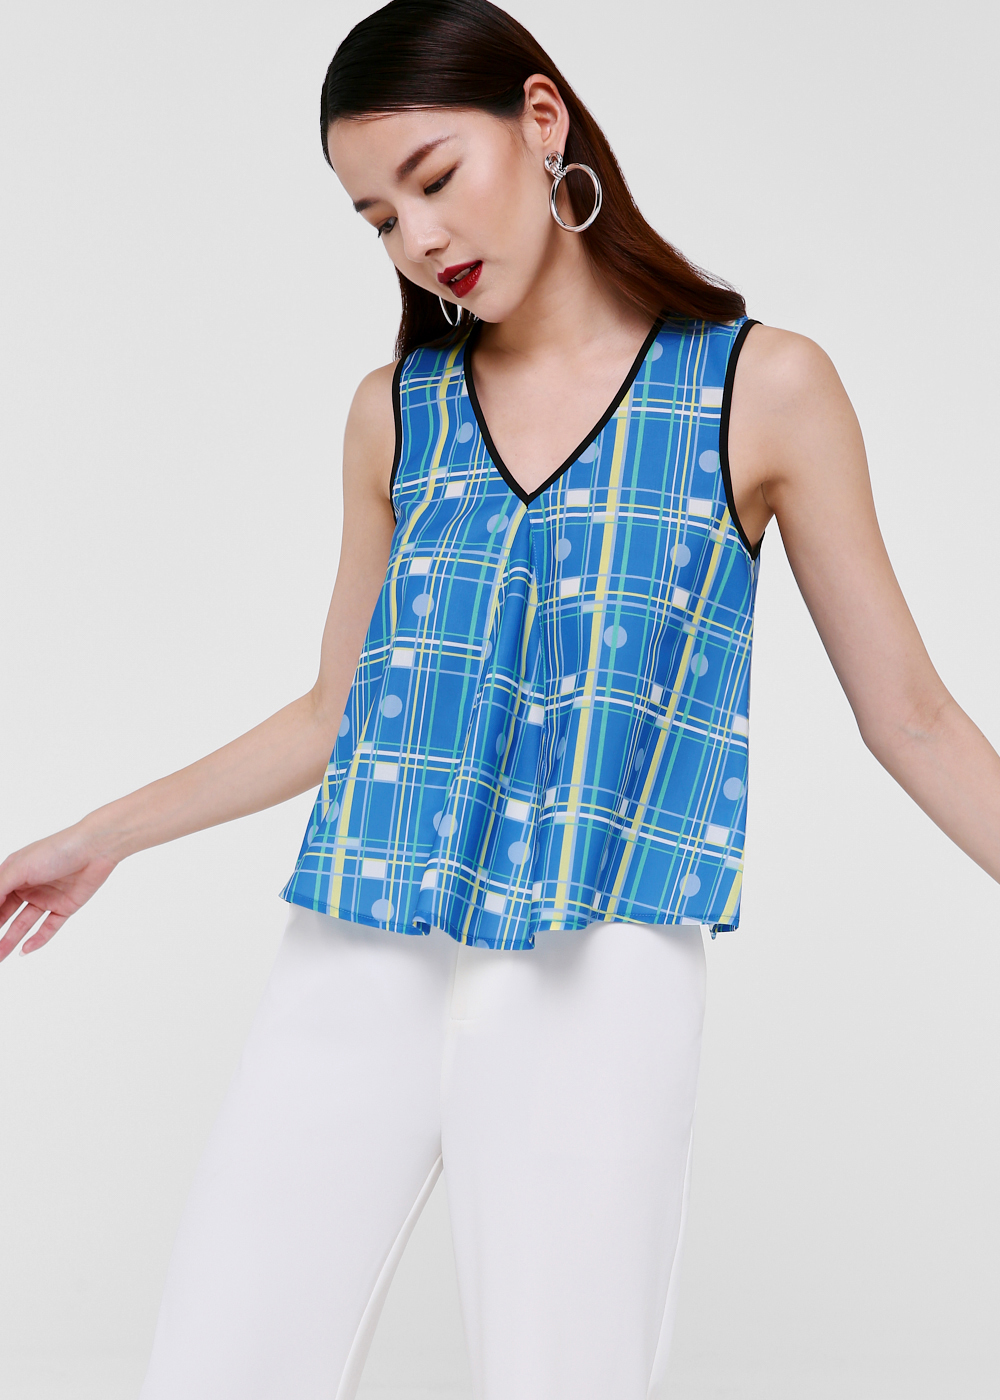 Zarita Relaxed Fit V-neck Top in Iced Soda